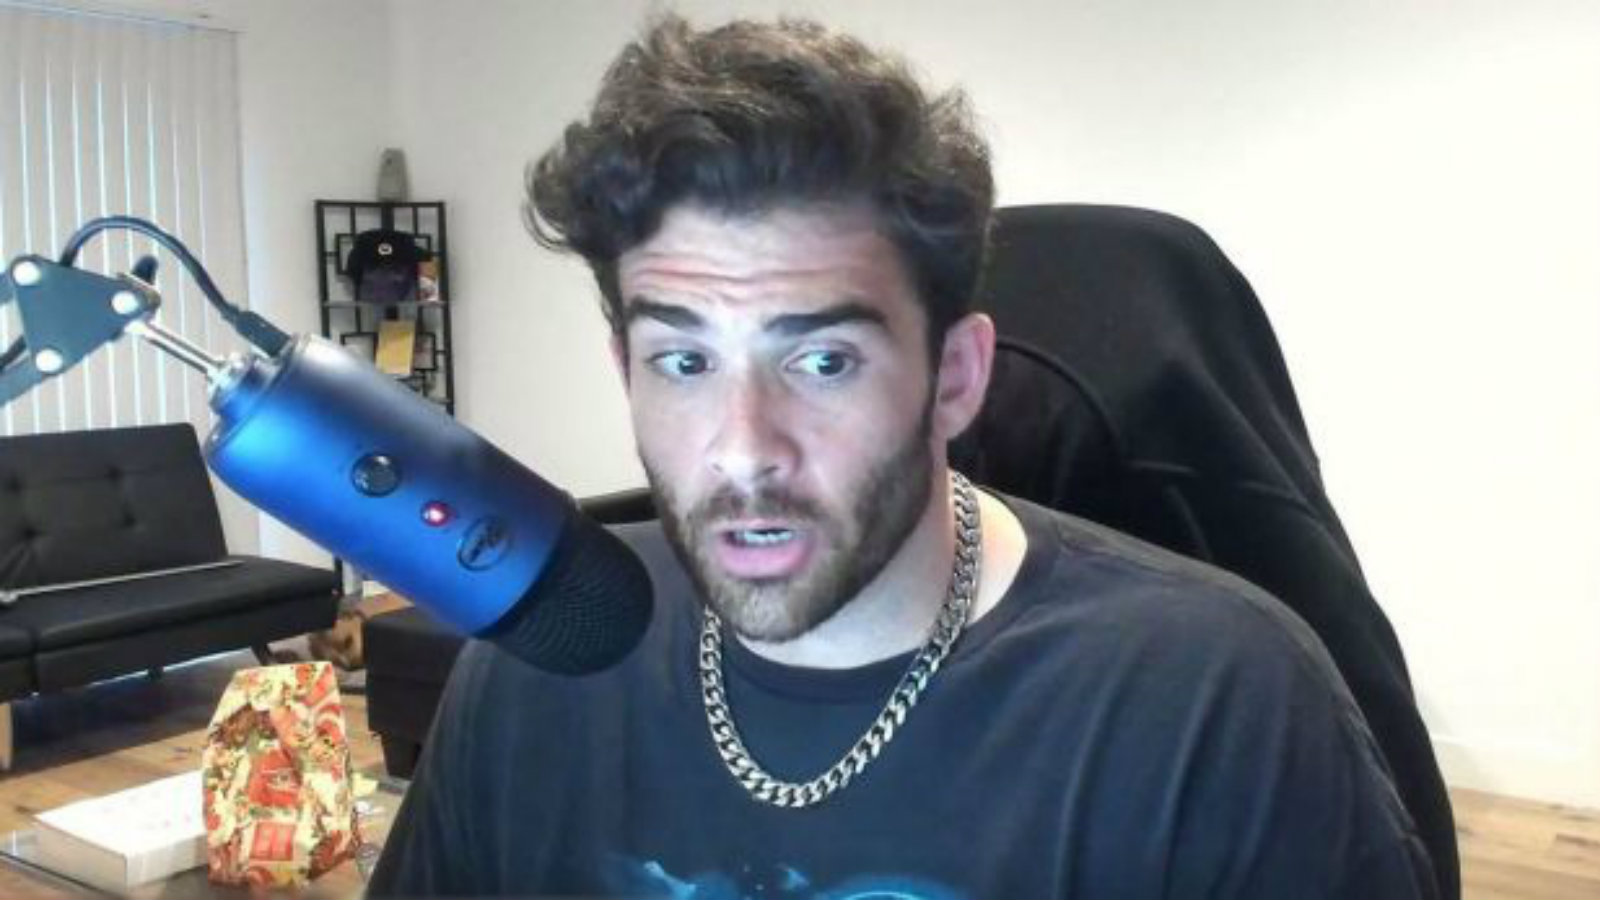 An image of Hasan Piker conducting a Twitch stream.